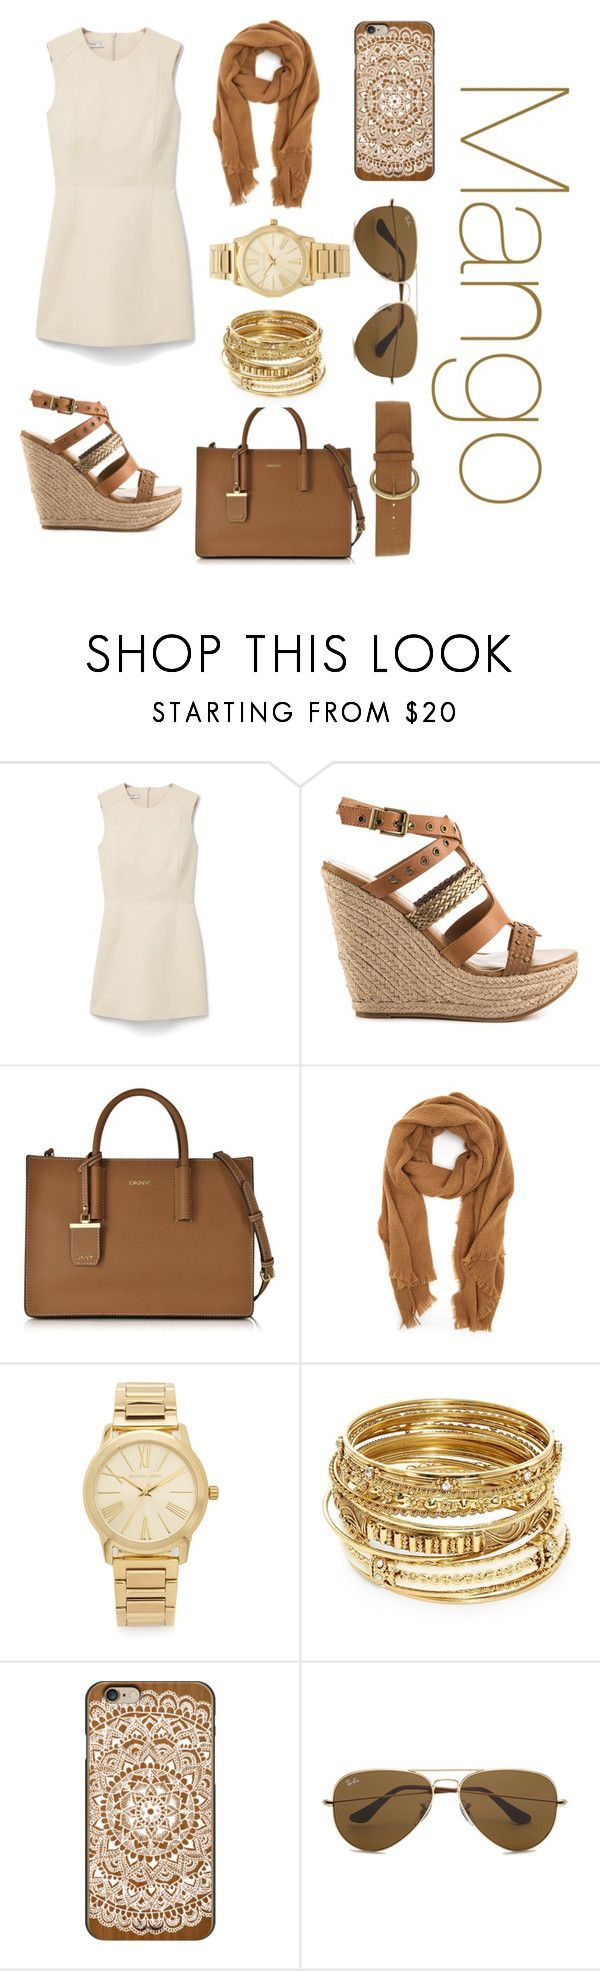 """Mango- Dress"" by gabydesigner on Polyvore featuring MANGO, ALDO, DKNY, Michael Kors, ABS by Allen Schwartz, Casetify, Ray-Ban and Dorothy Perkins"